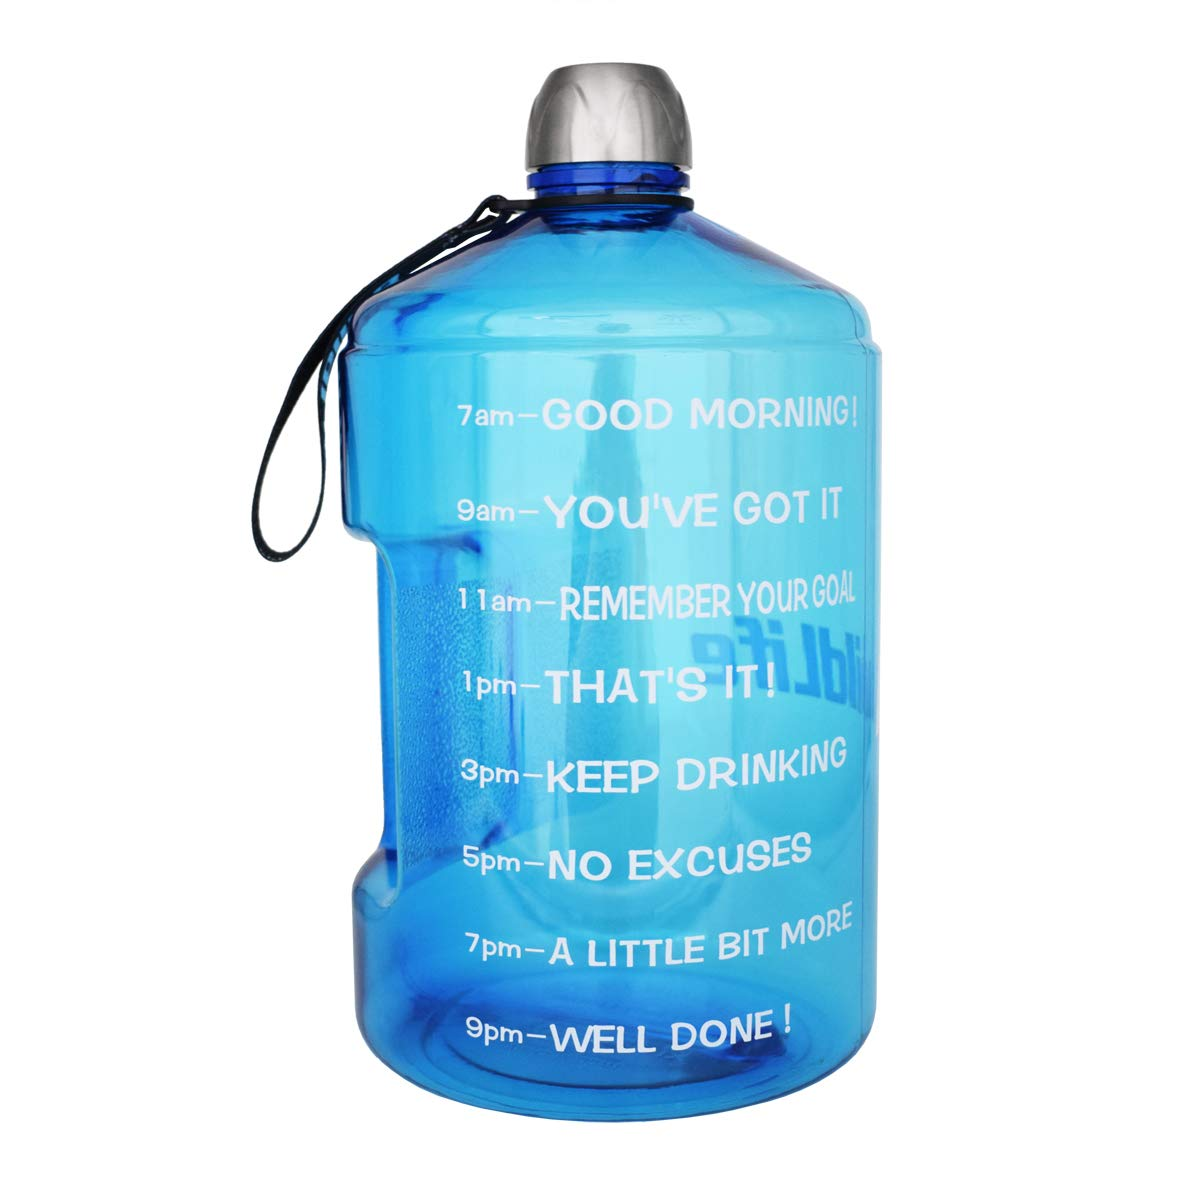 1 Gallon Water Bottle Motivational Fitness Workout with Time Marker  Drink More Water Daily   Clear BPA-Free   Large 128 Ounce/43OZ of Water Throughout The Day (1 gallon-light blue, 1 gallon)